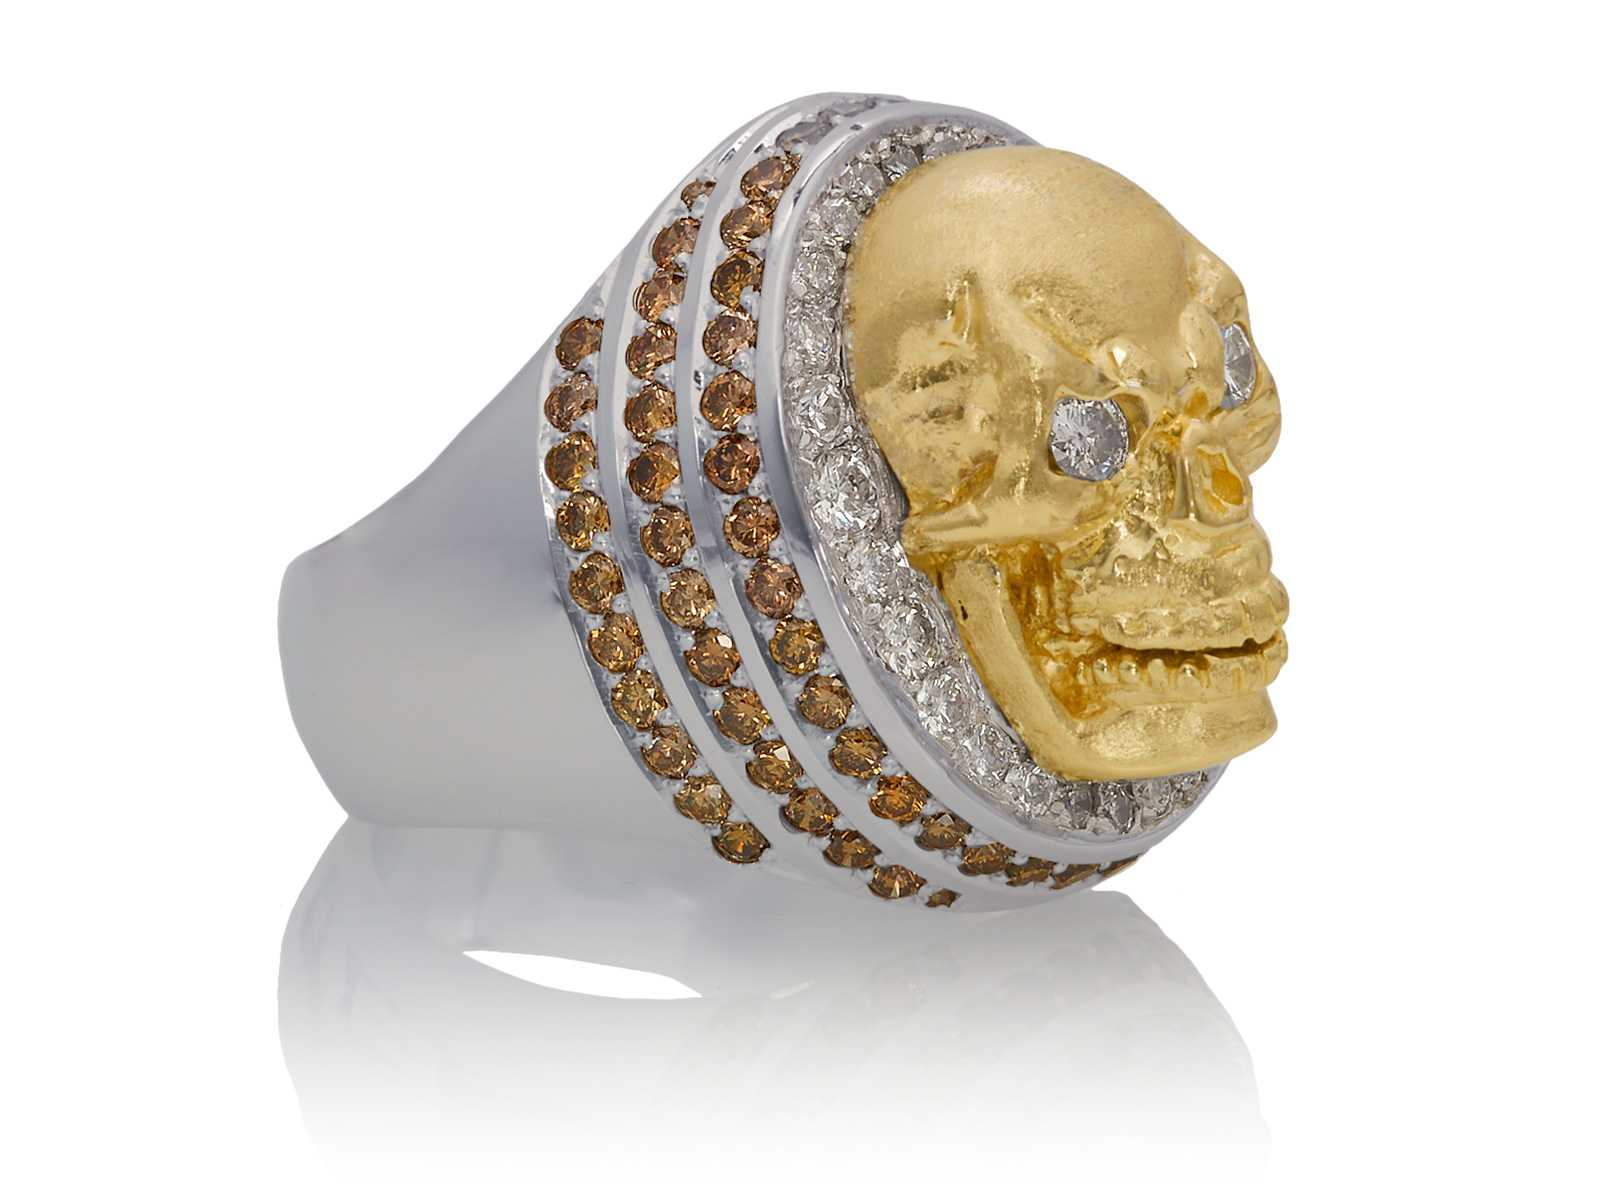 RG4006 Skull Ring in White and Yellow Gold, with White & Chocolate Diamonds, designed by Steve Soffa